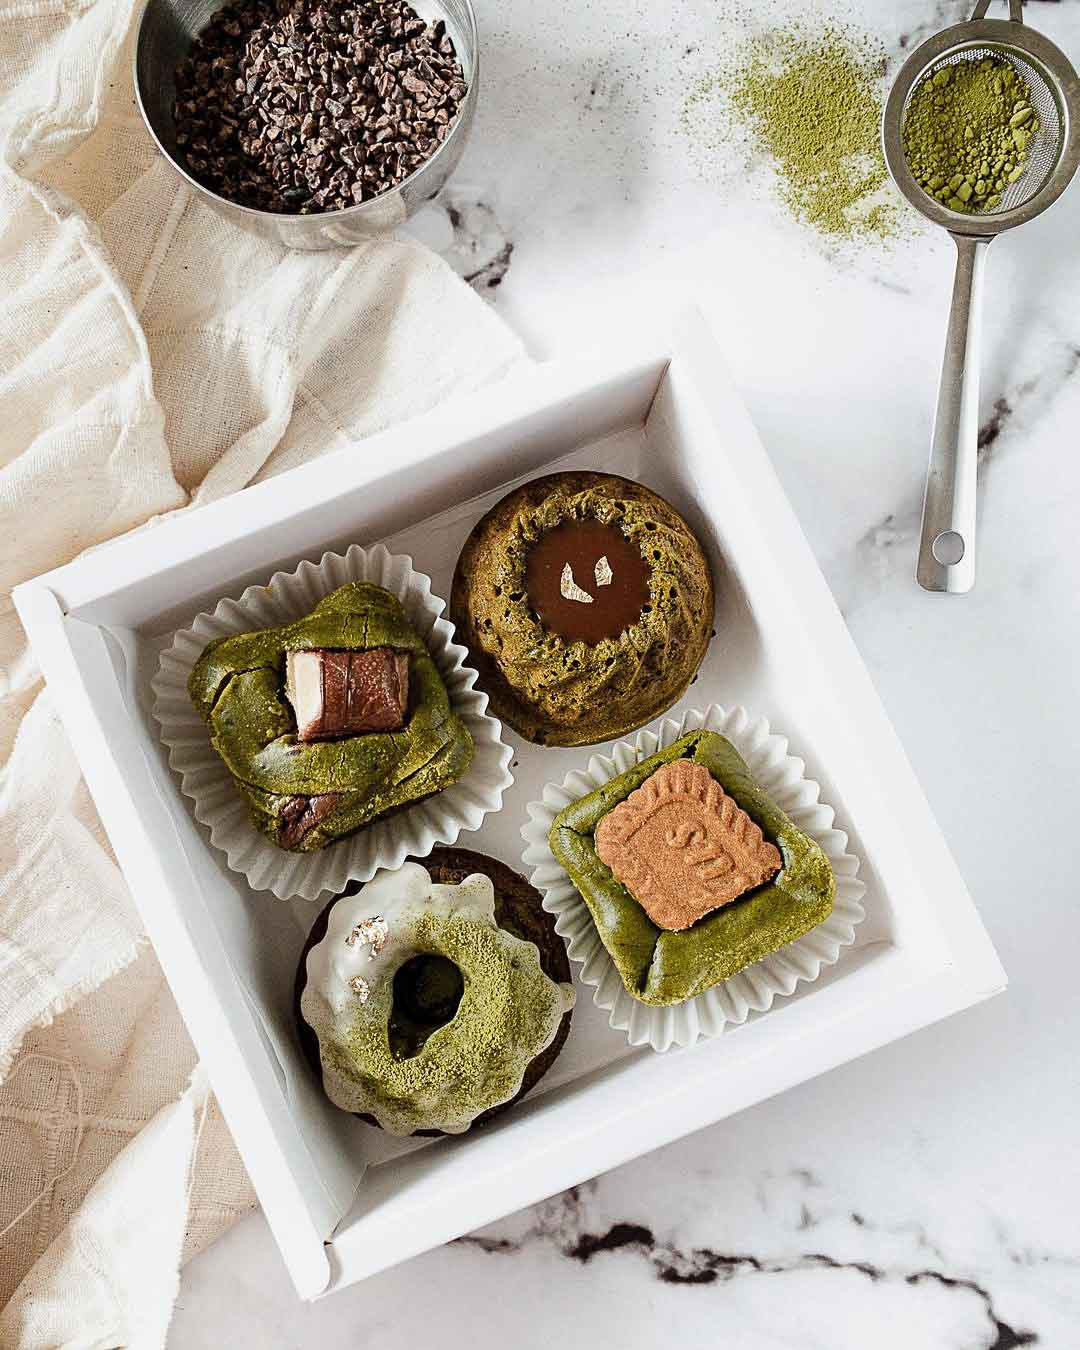 Dessert box delivery - Gaily Bakes